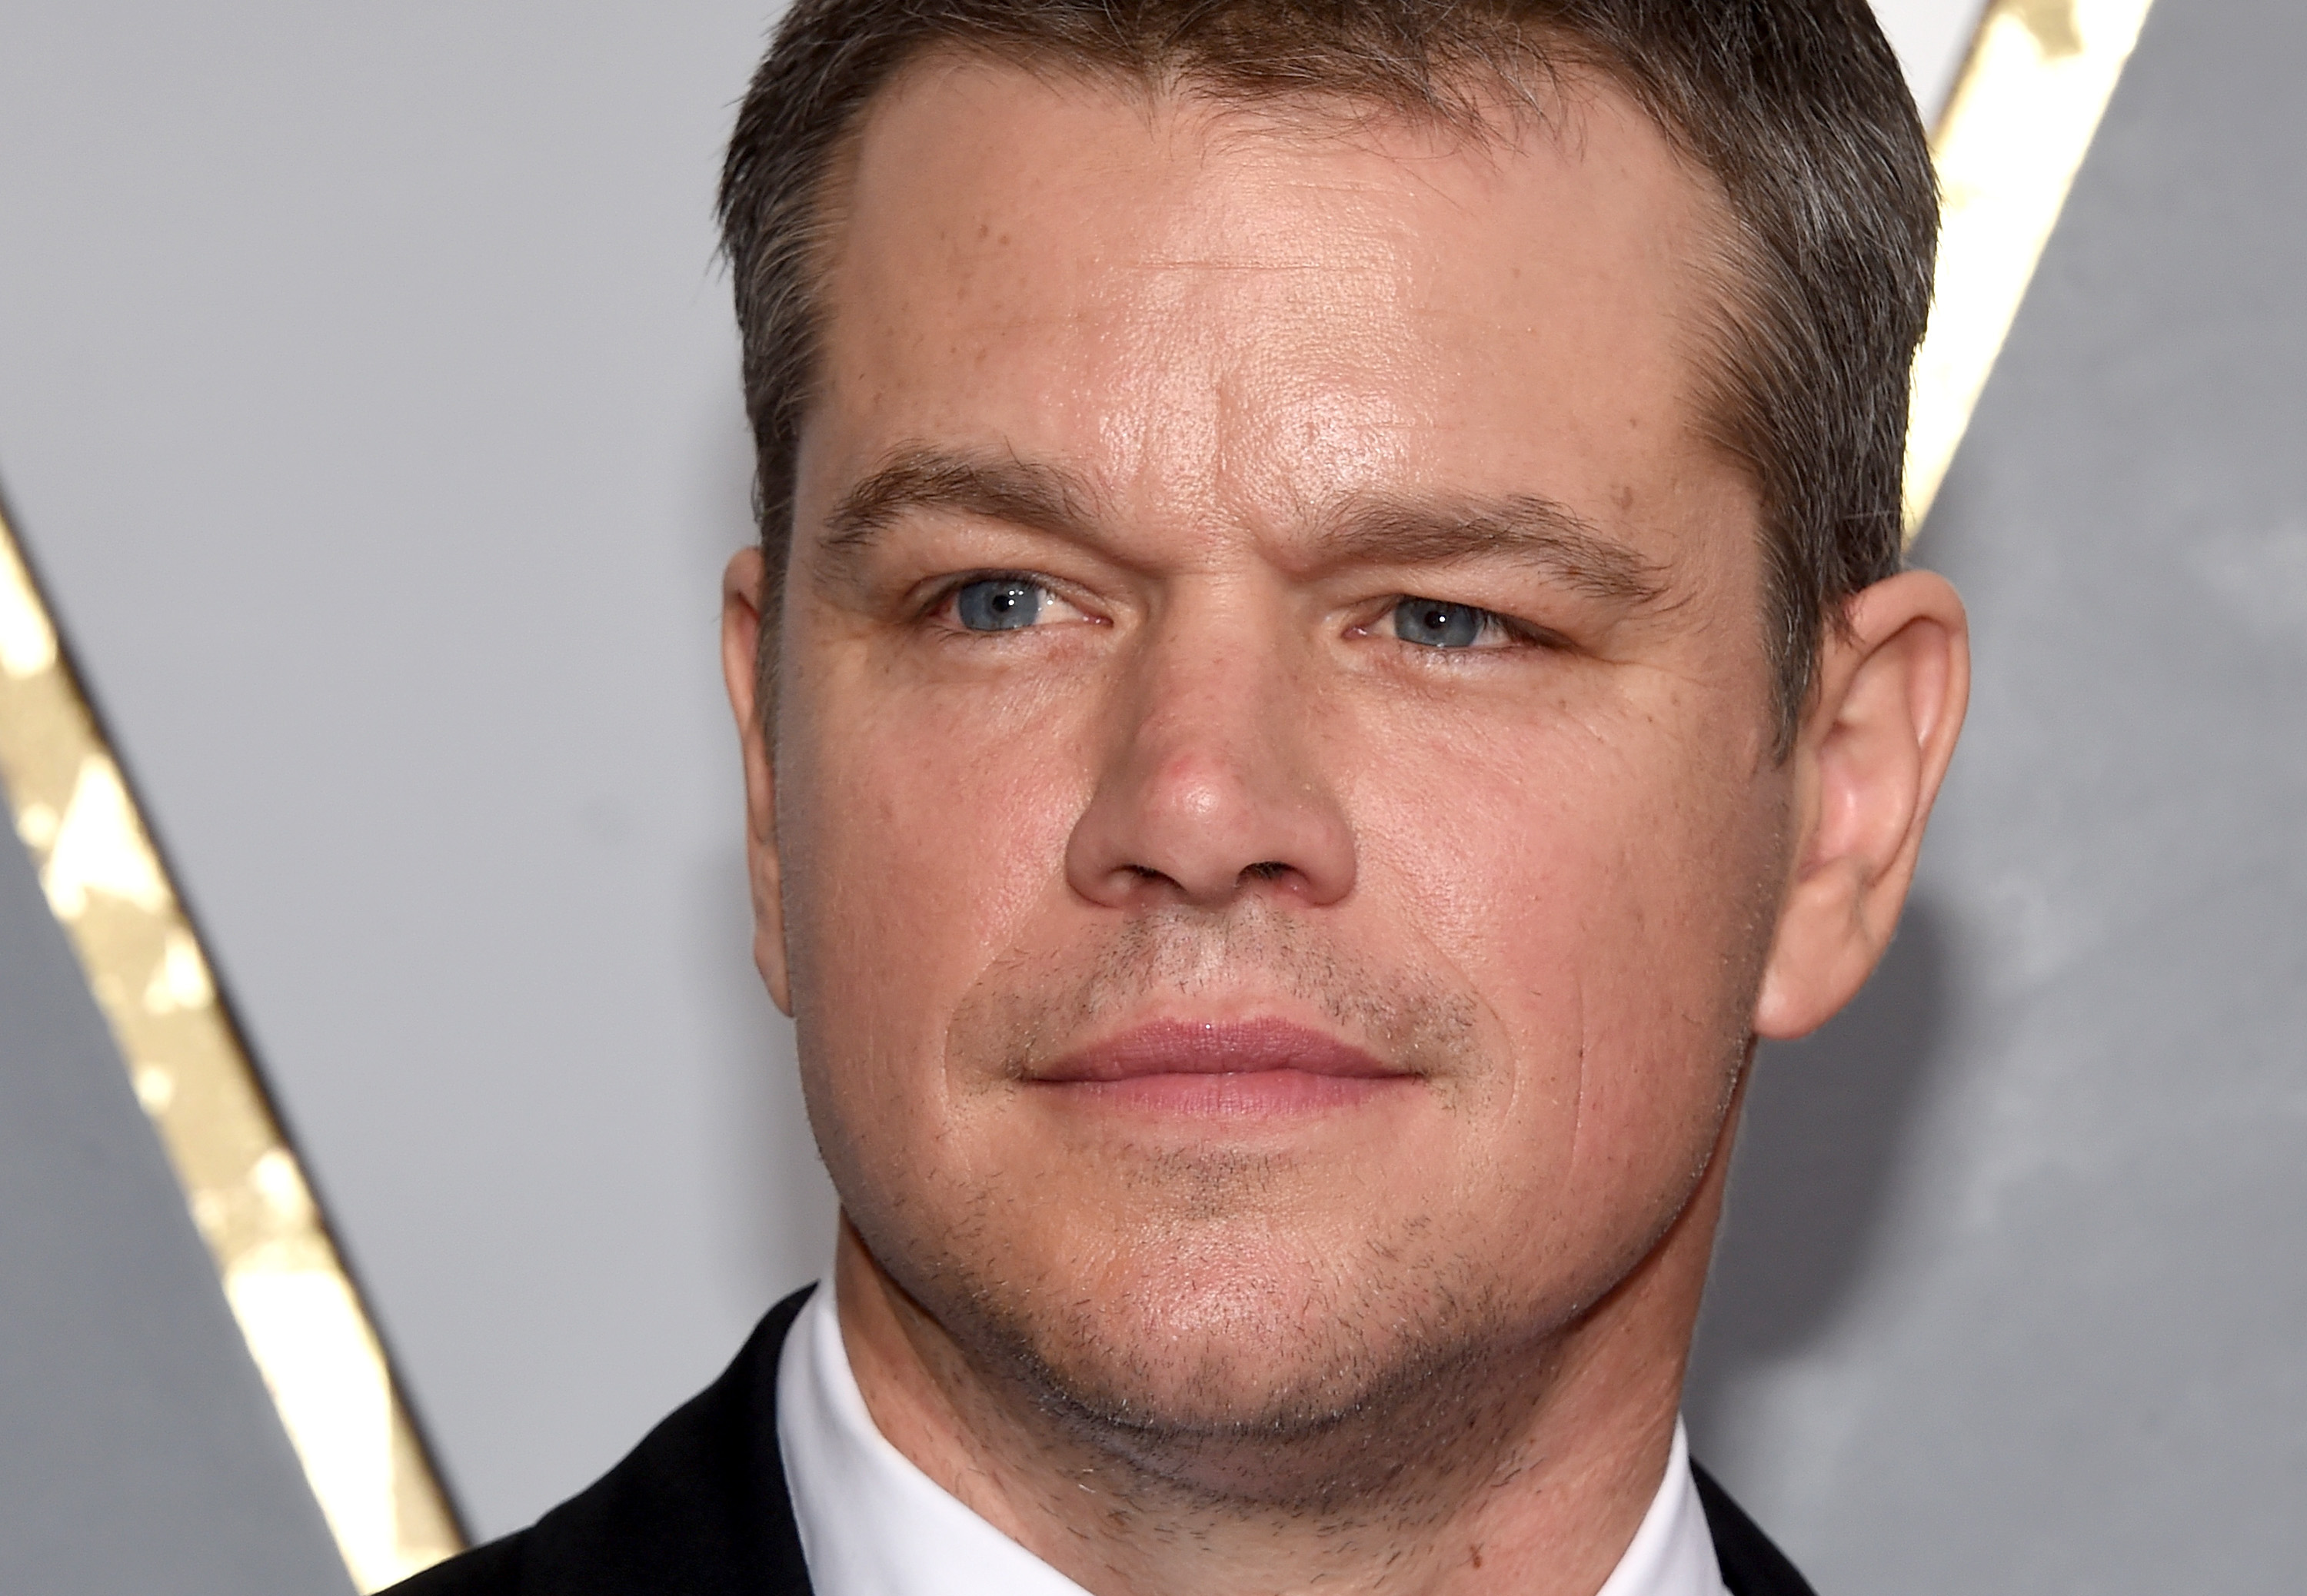 Matt Damon attends the 88th Annual Academy Awards at Hollywood & Highland Center on February 28, 2016 in Hollywood, California.